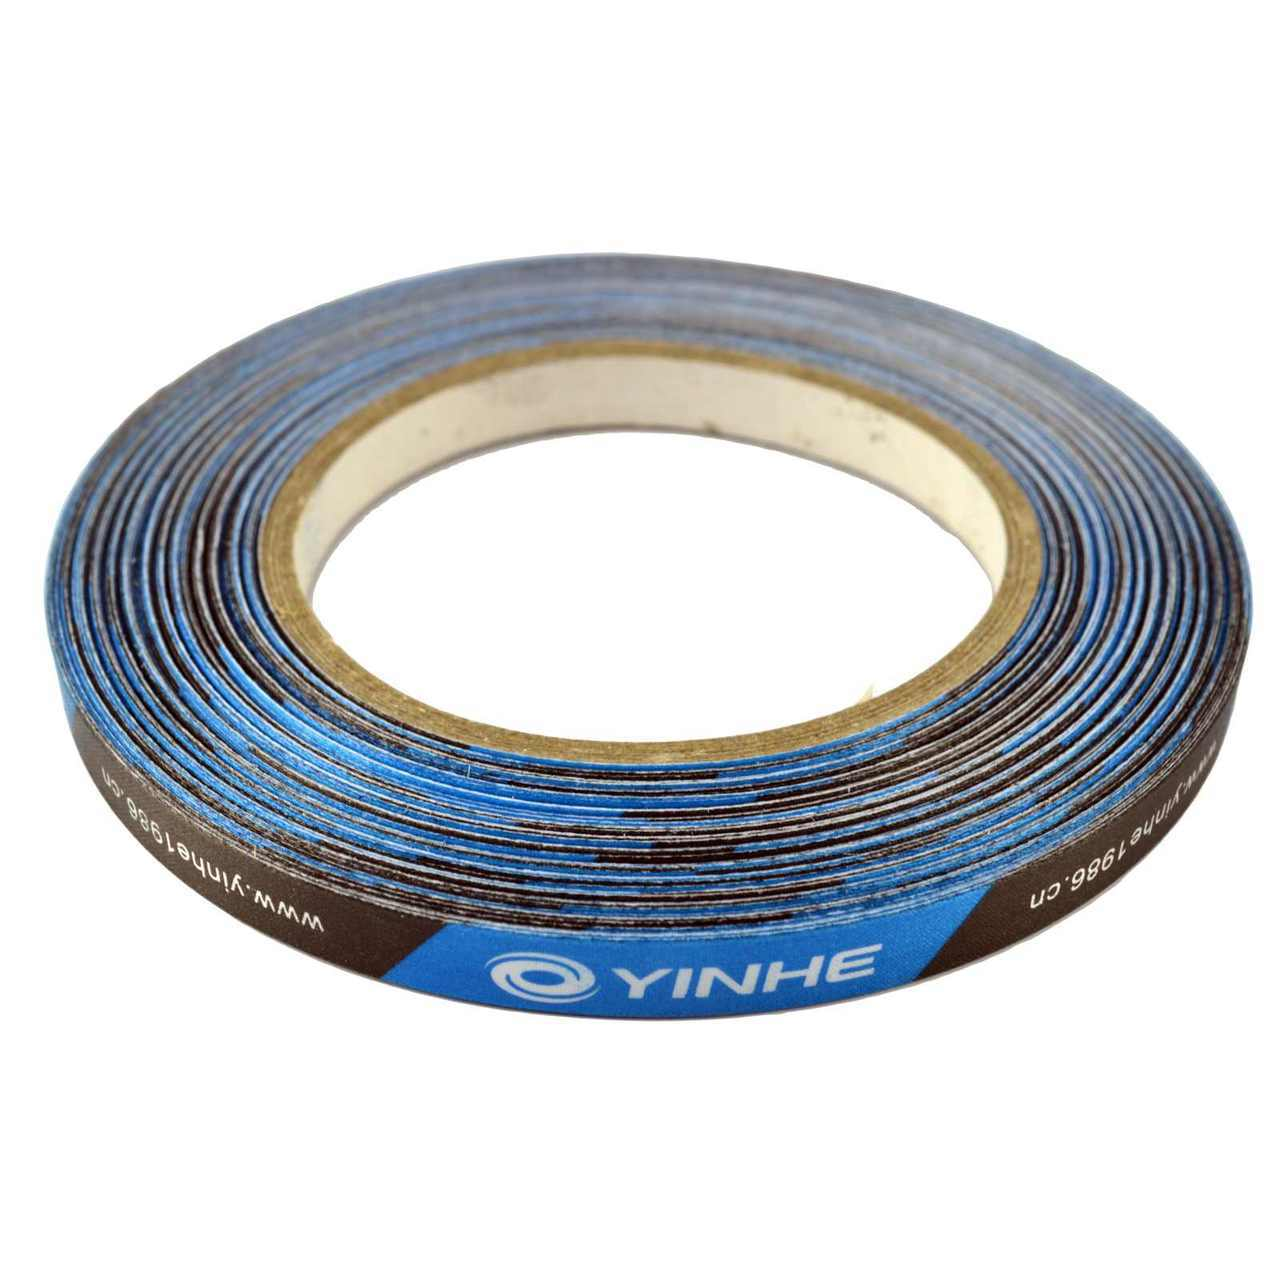 YINHE Edge Tape Roll 25m